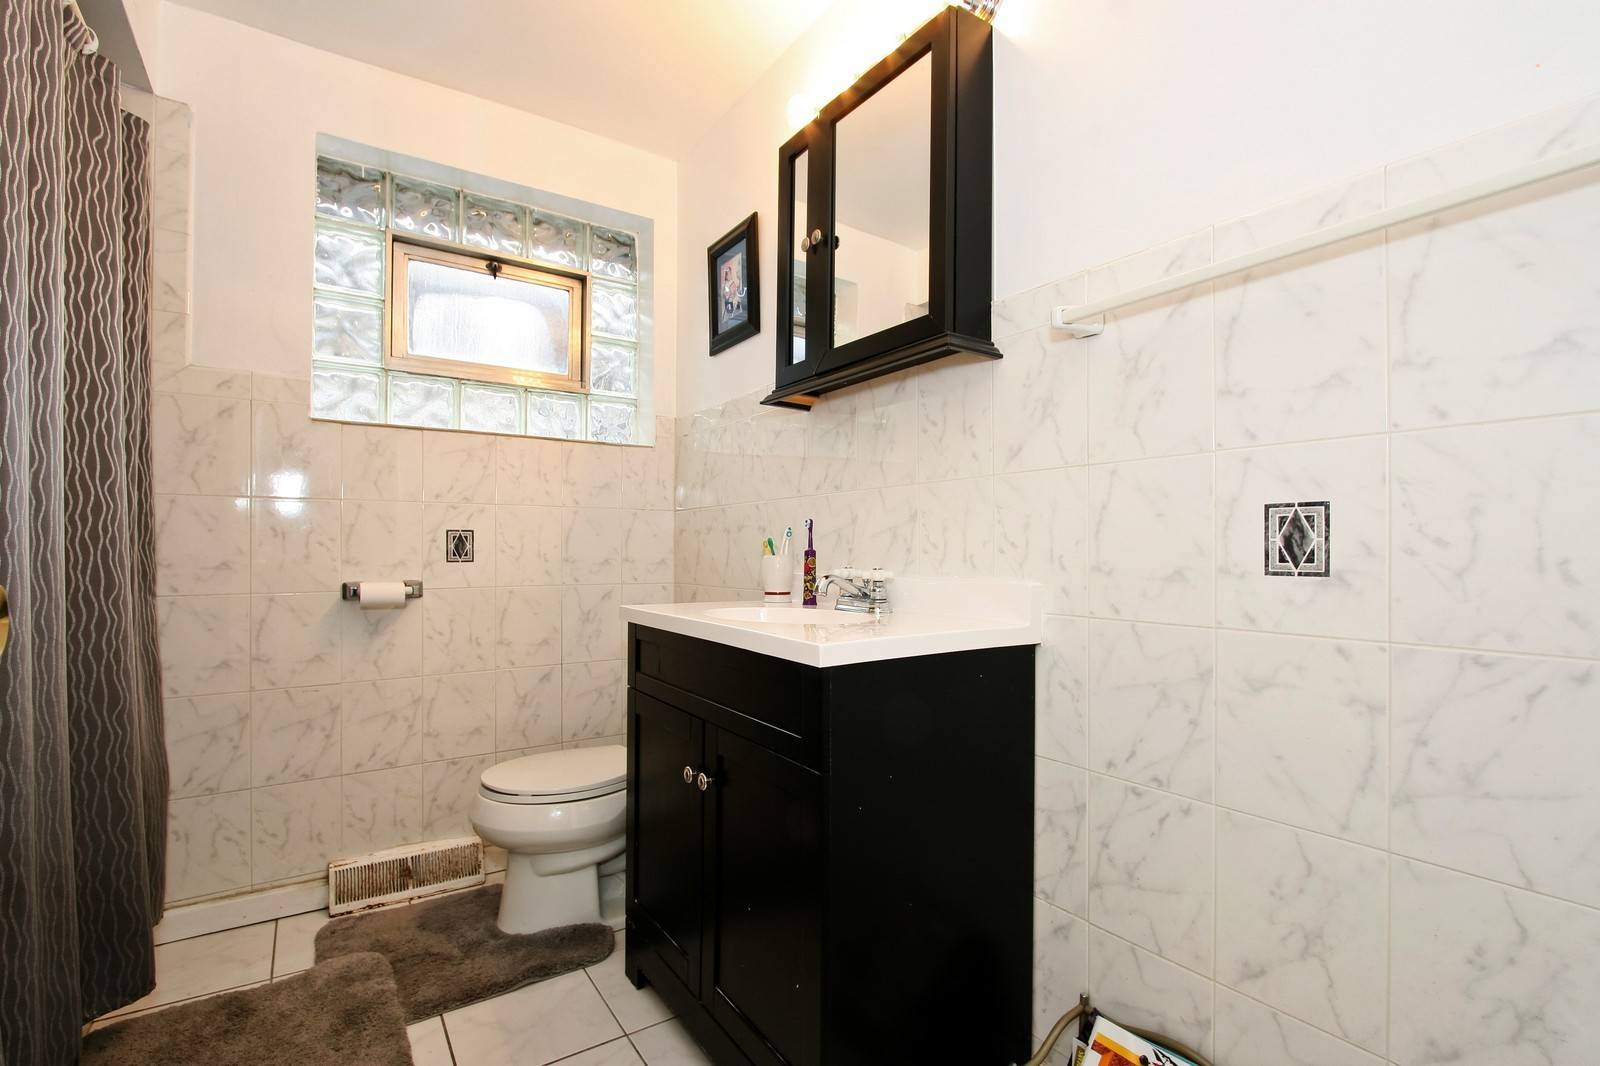 Real Estate Photography - 12462 S Wabash, Chicago, IL, 60620 - Bathroom